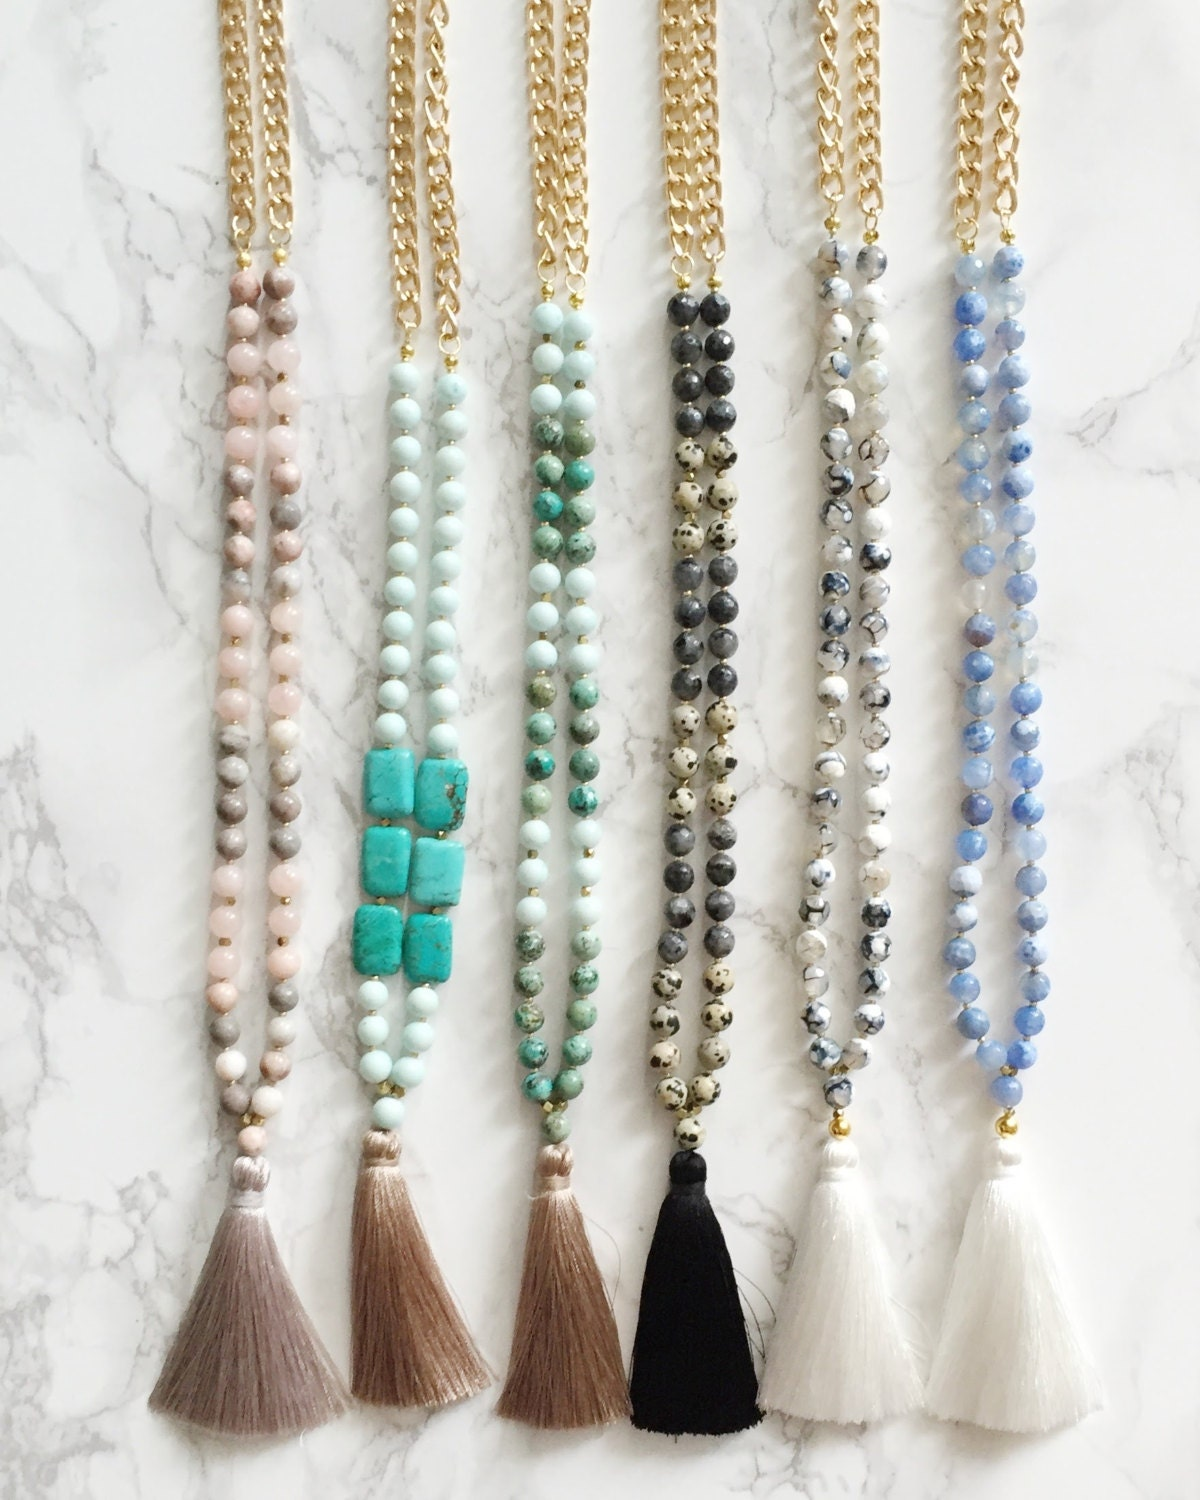 Beaded Tassel Necklace - Light Blue & White